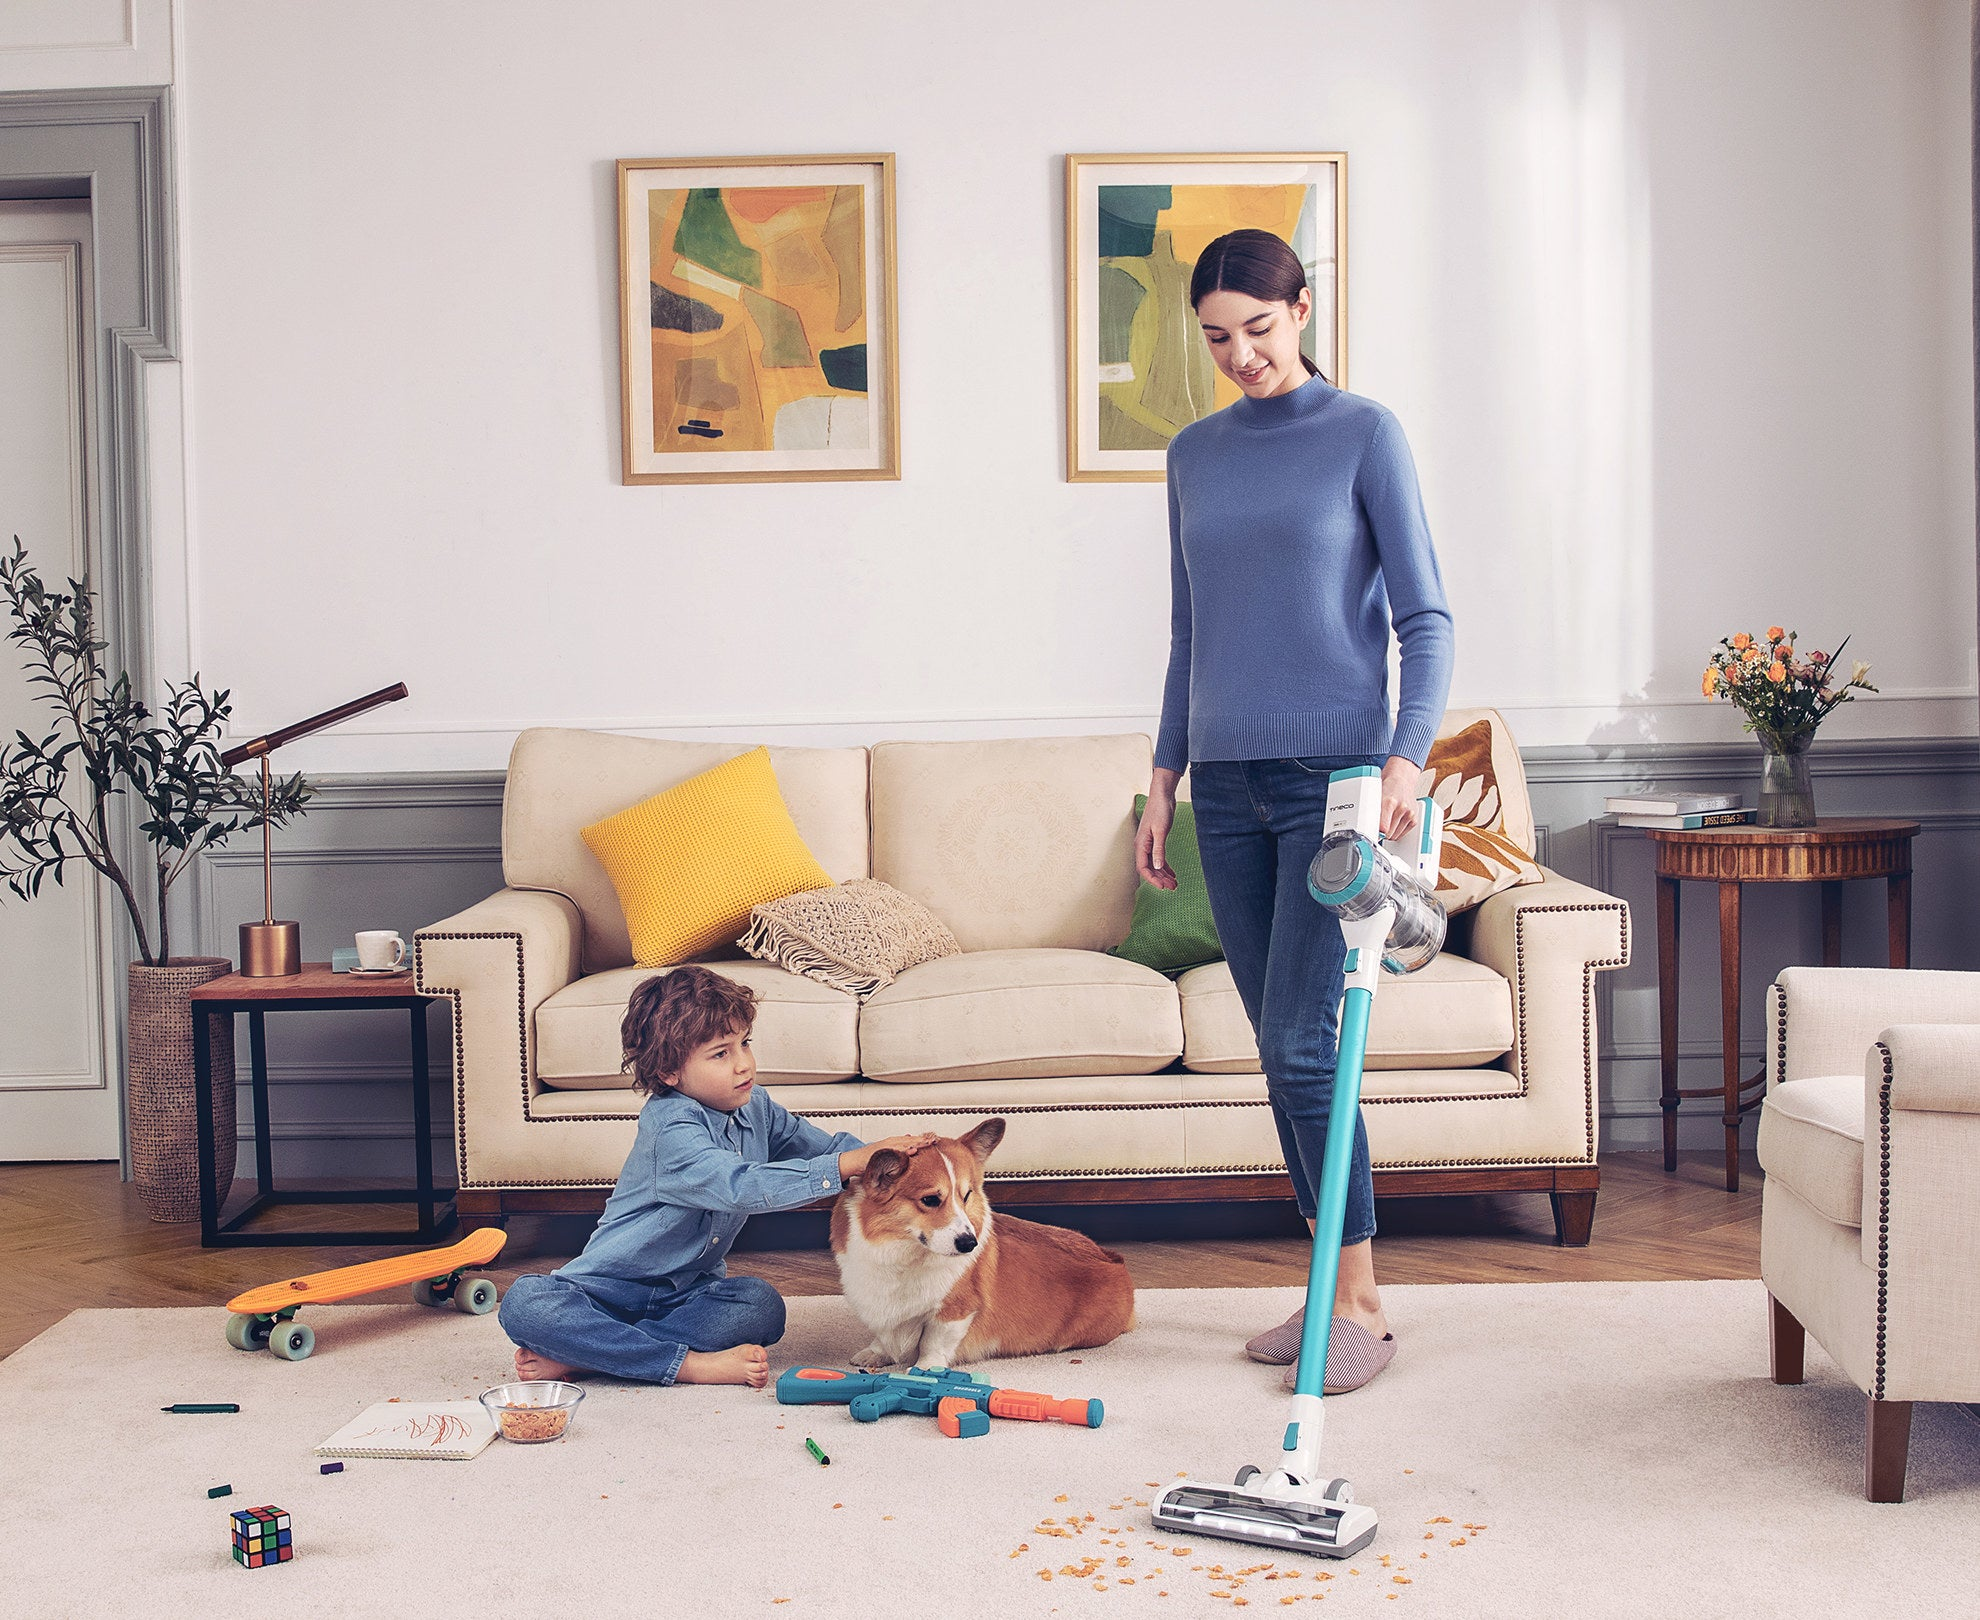 Model using vacuum in home with kid and dog